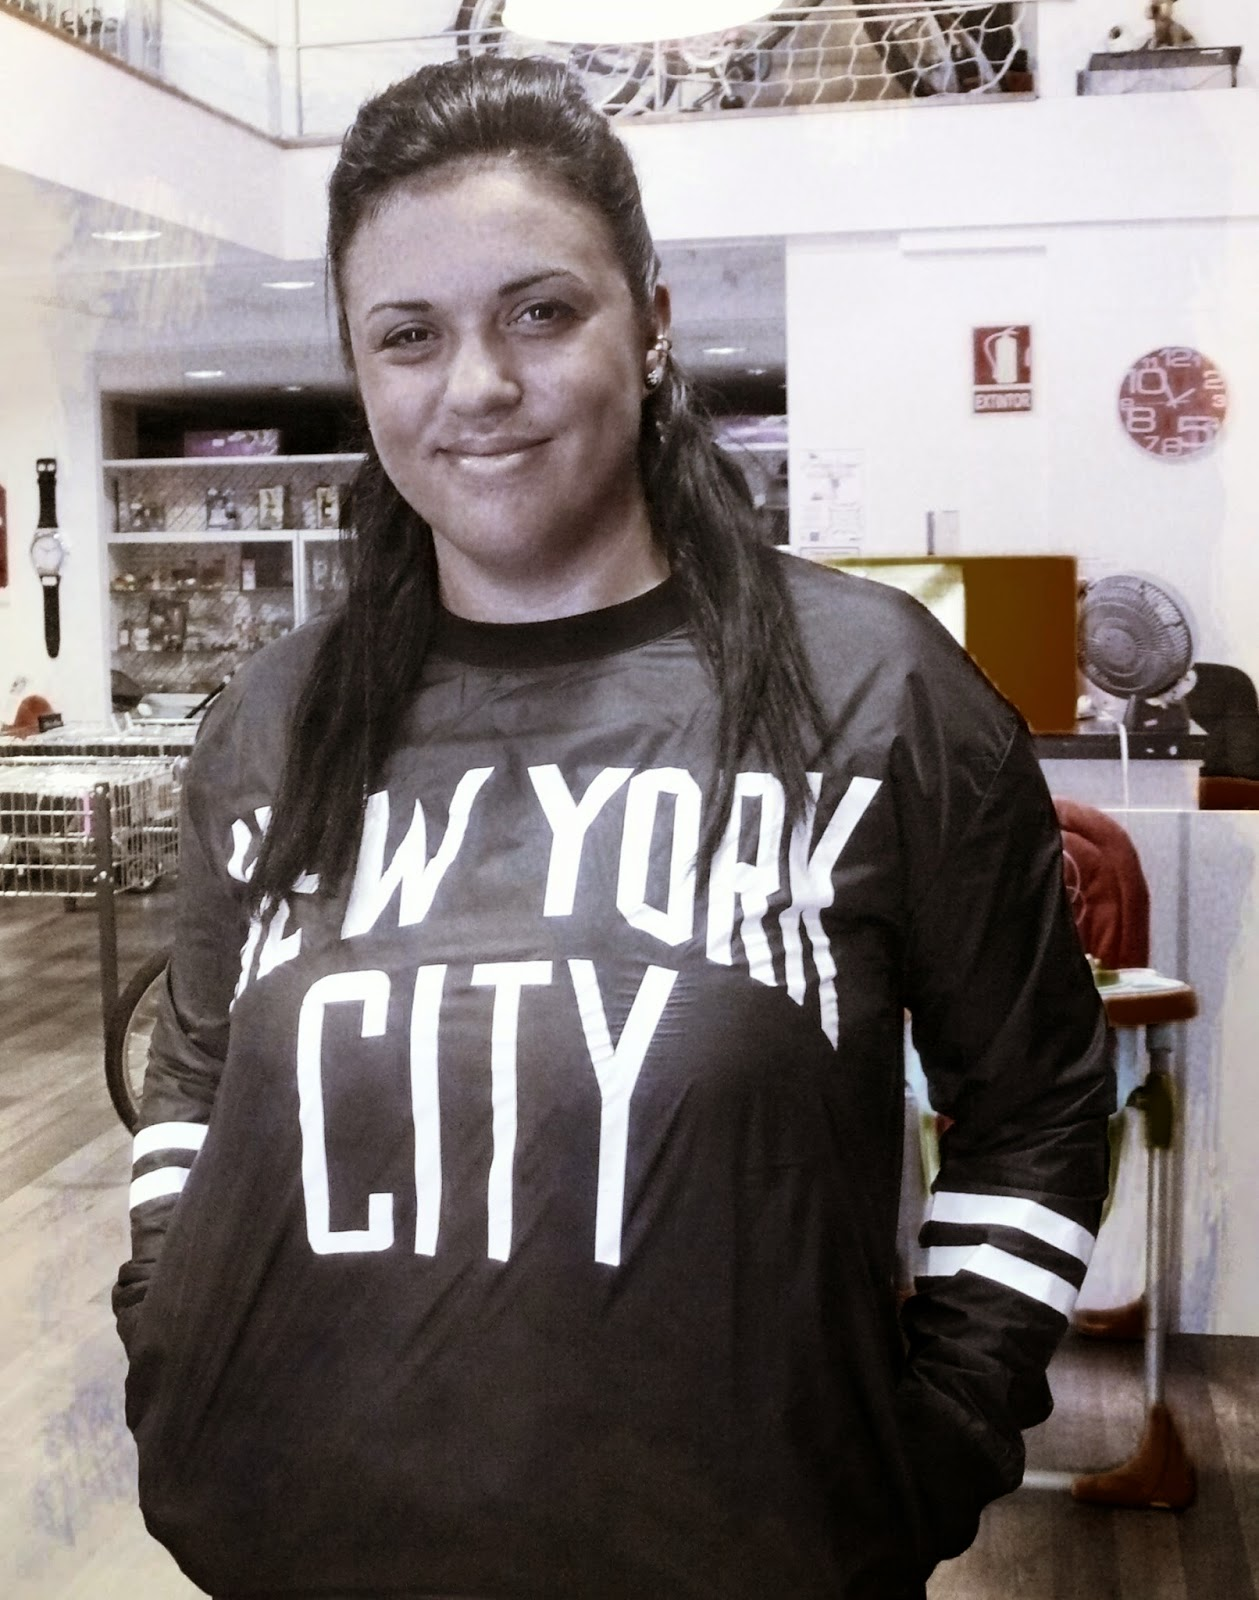 http://www.frontrowshop.com/product/new-york-city-dress?ceid=2283